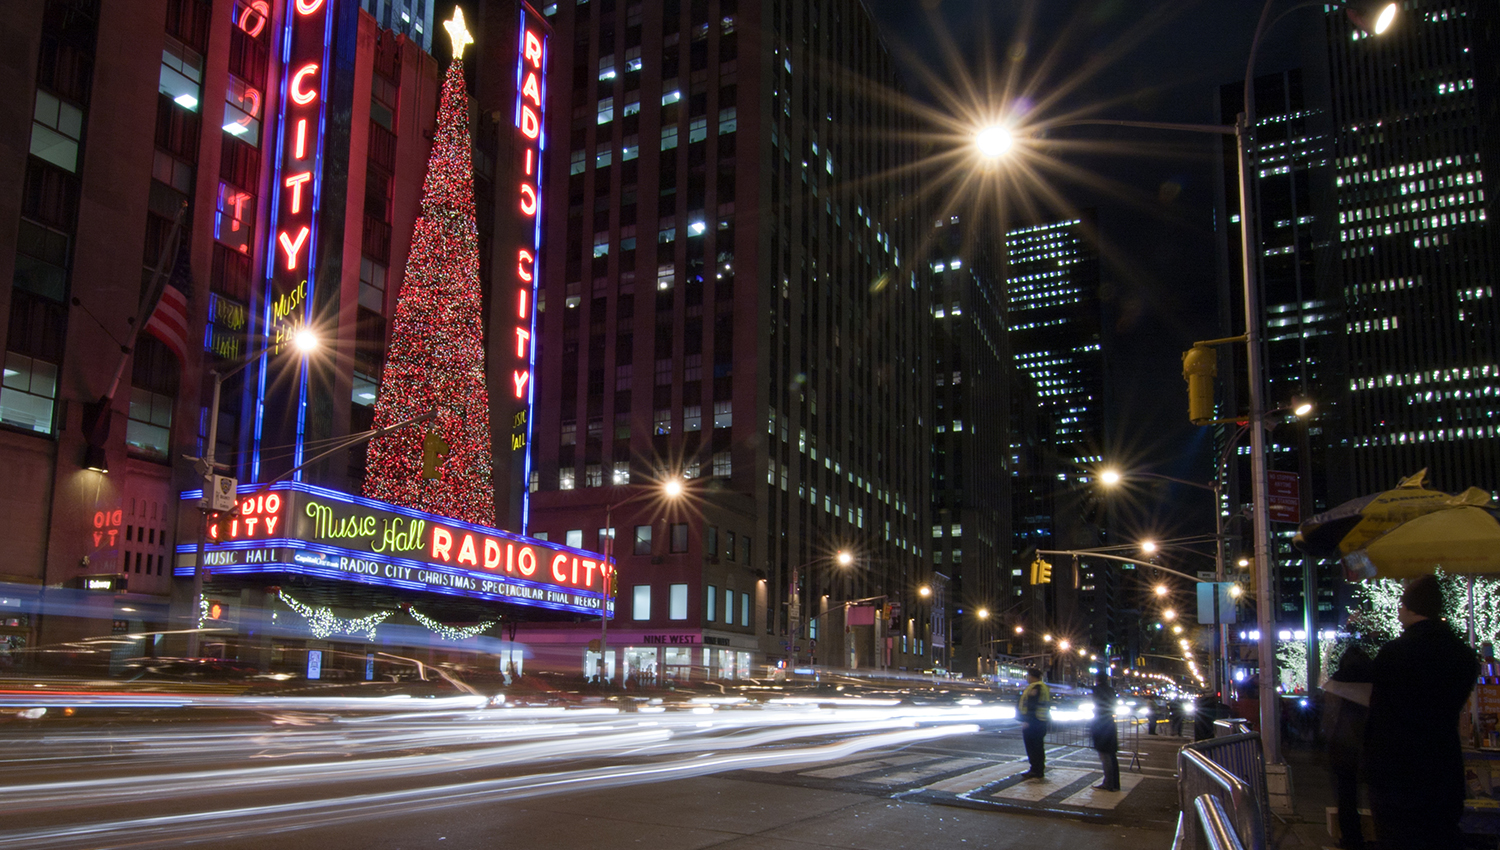 Assista ao Radio City Christmas Spectacular